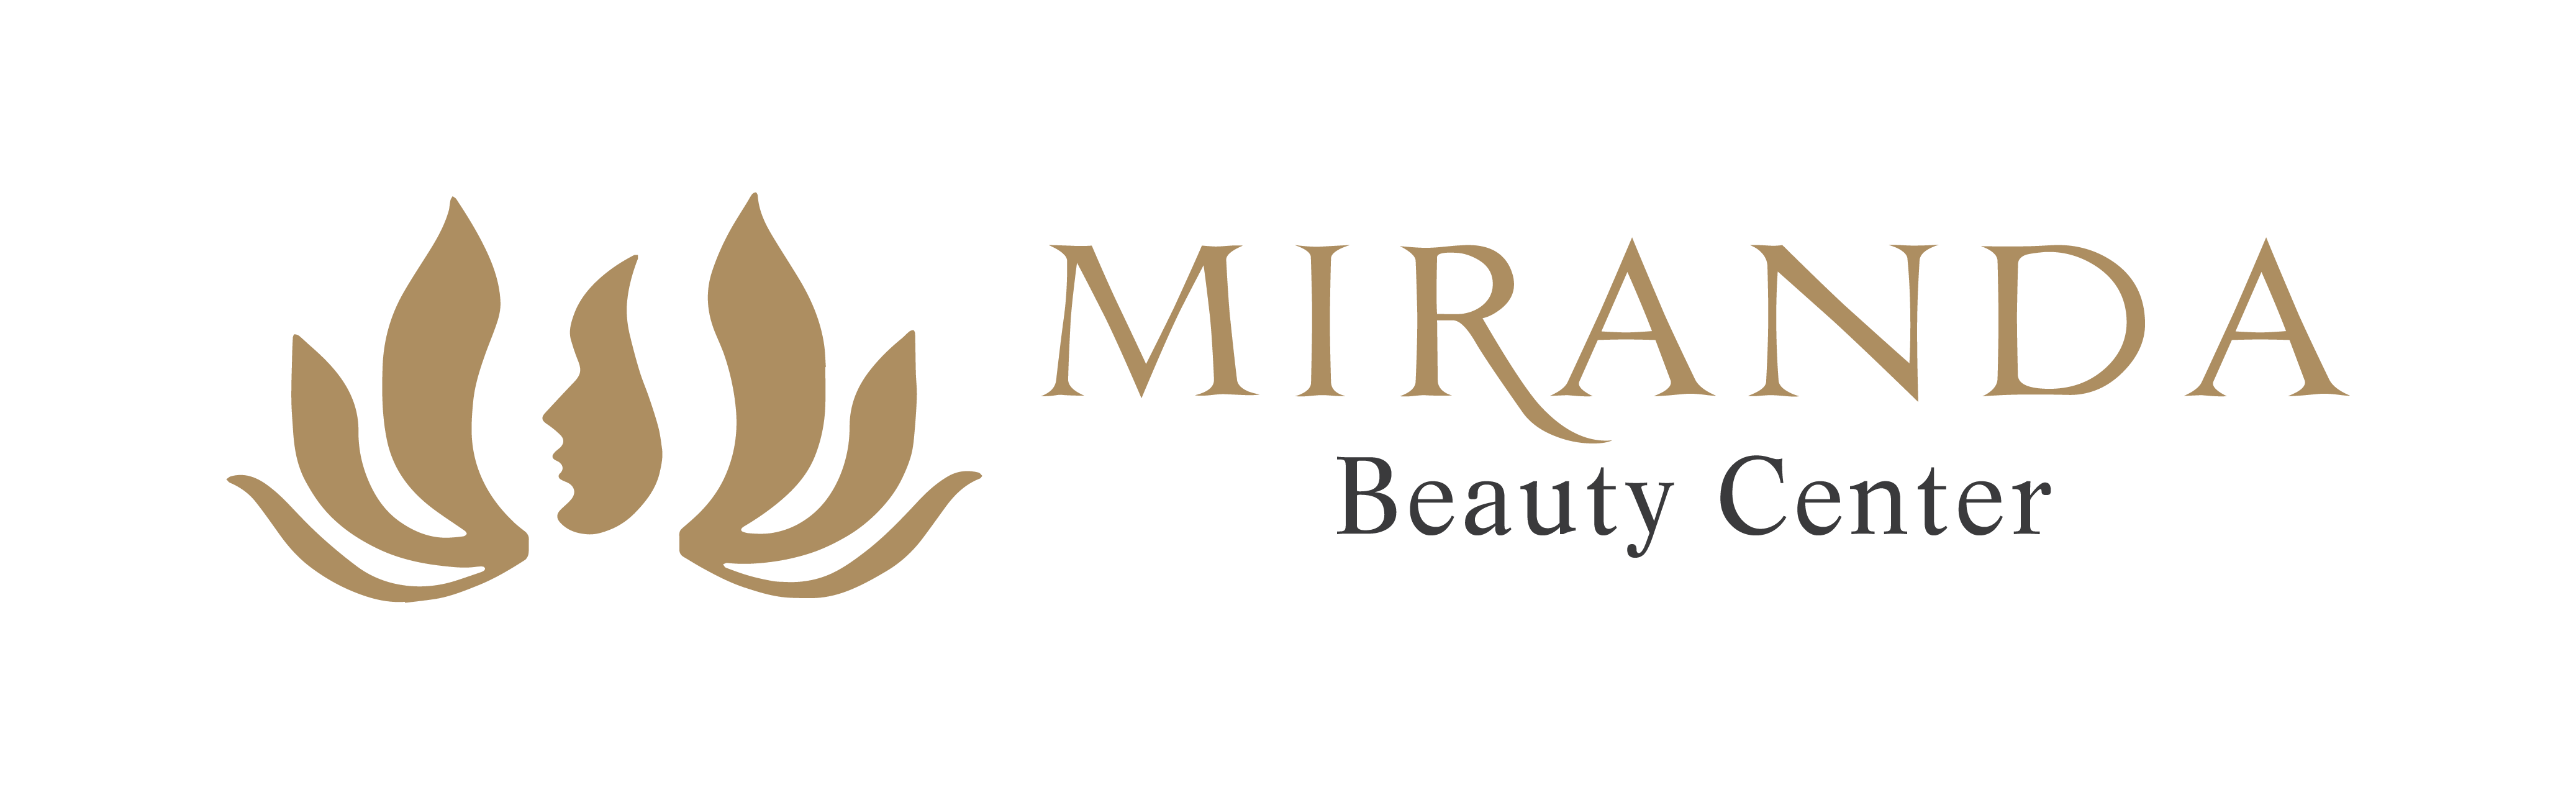 Miranda Beauty Center